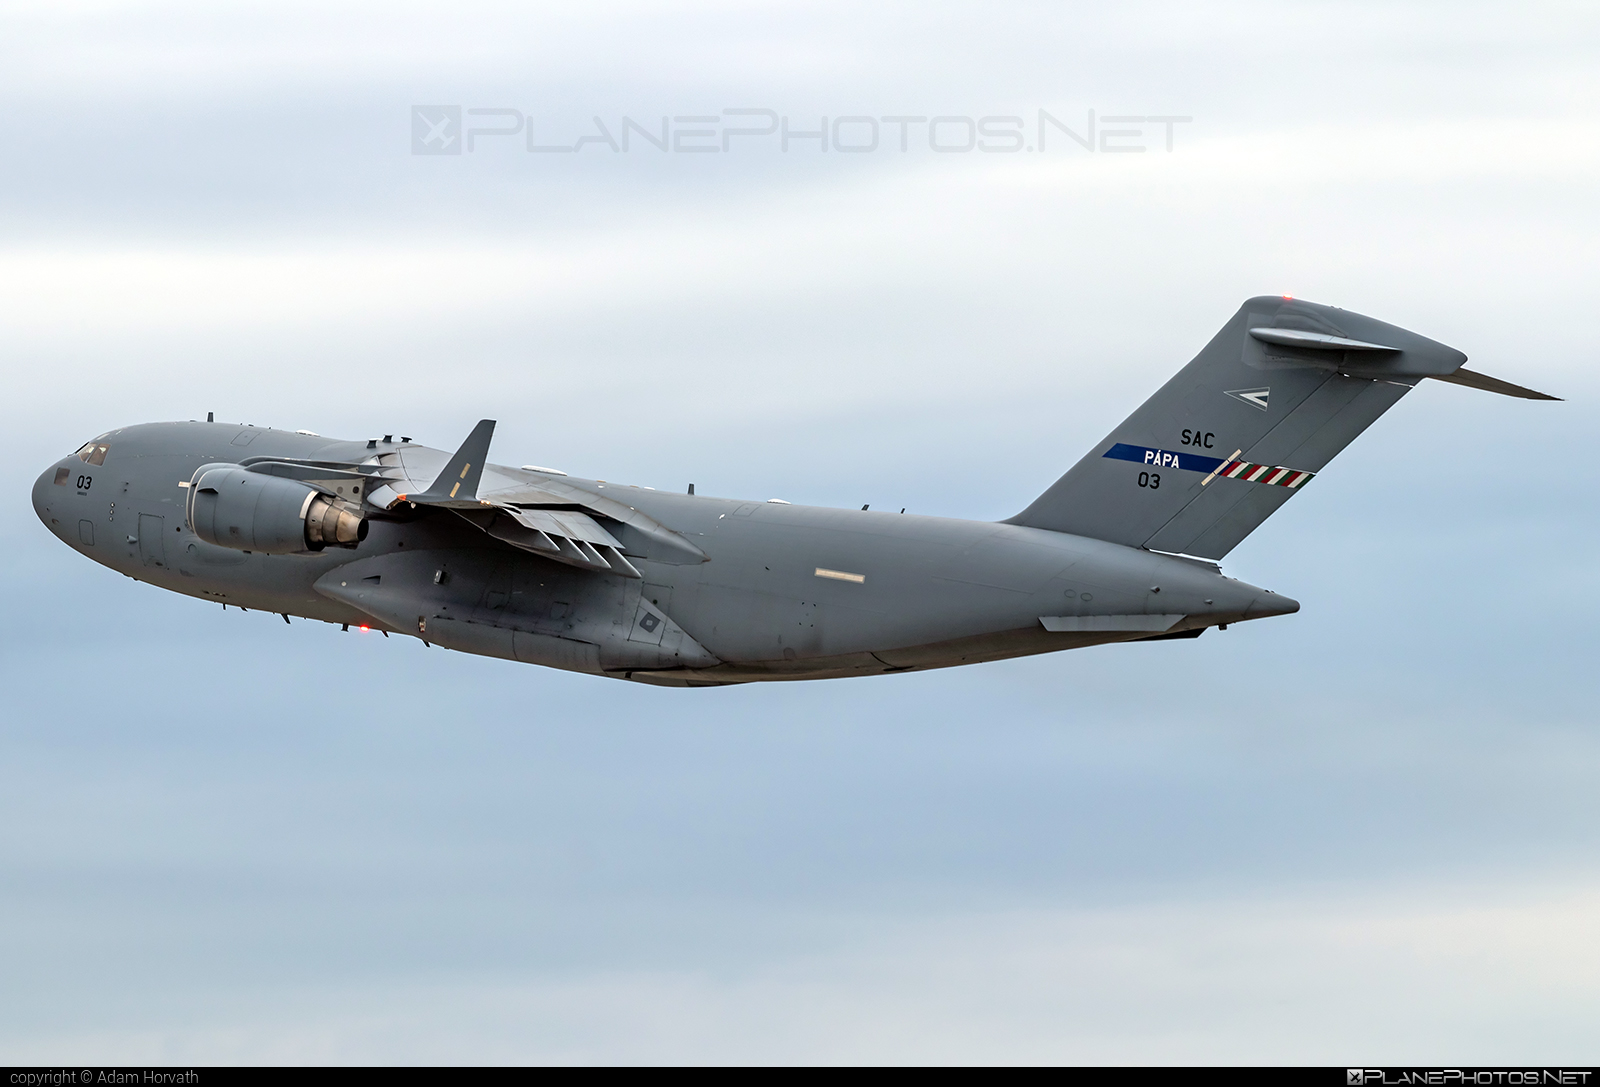 Boeing C-17A Globemaster III - 03 operated by NATO Strategic Airlift Capability (SAC) #boeing #c17 #c17globemaster #globemaster #globemasteriii #natostrategicairliftcapability #strategicairliftcapability